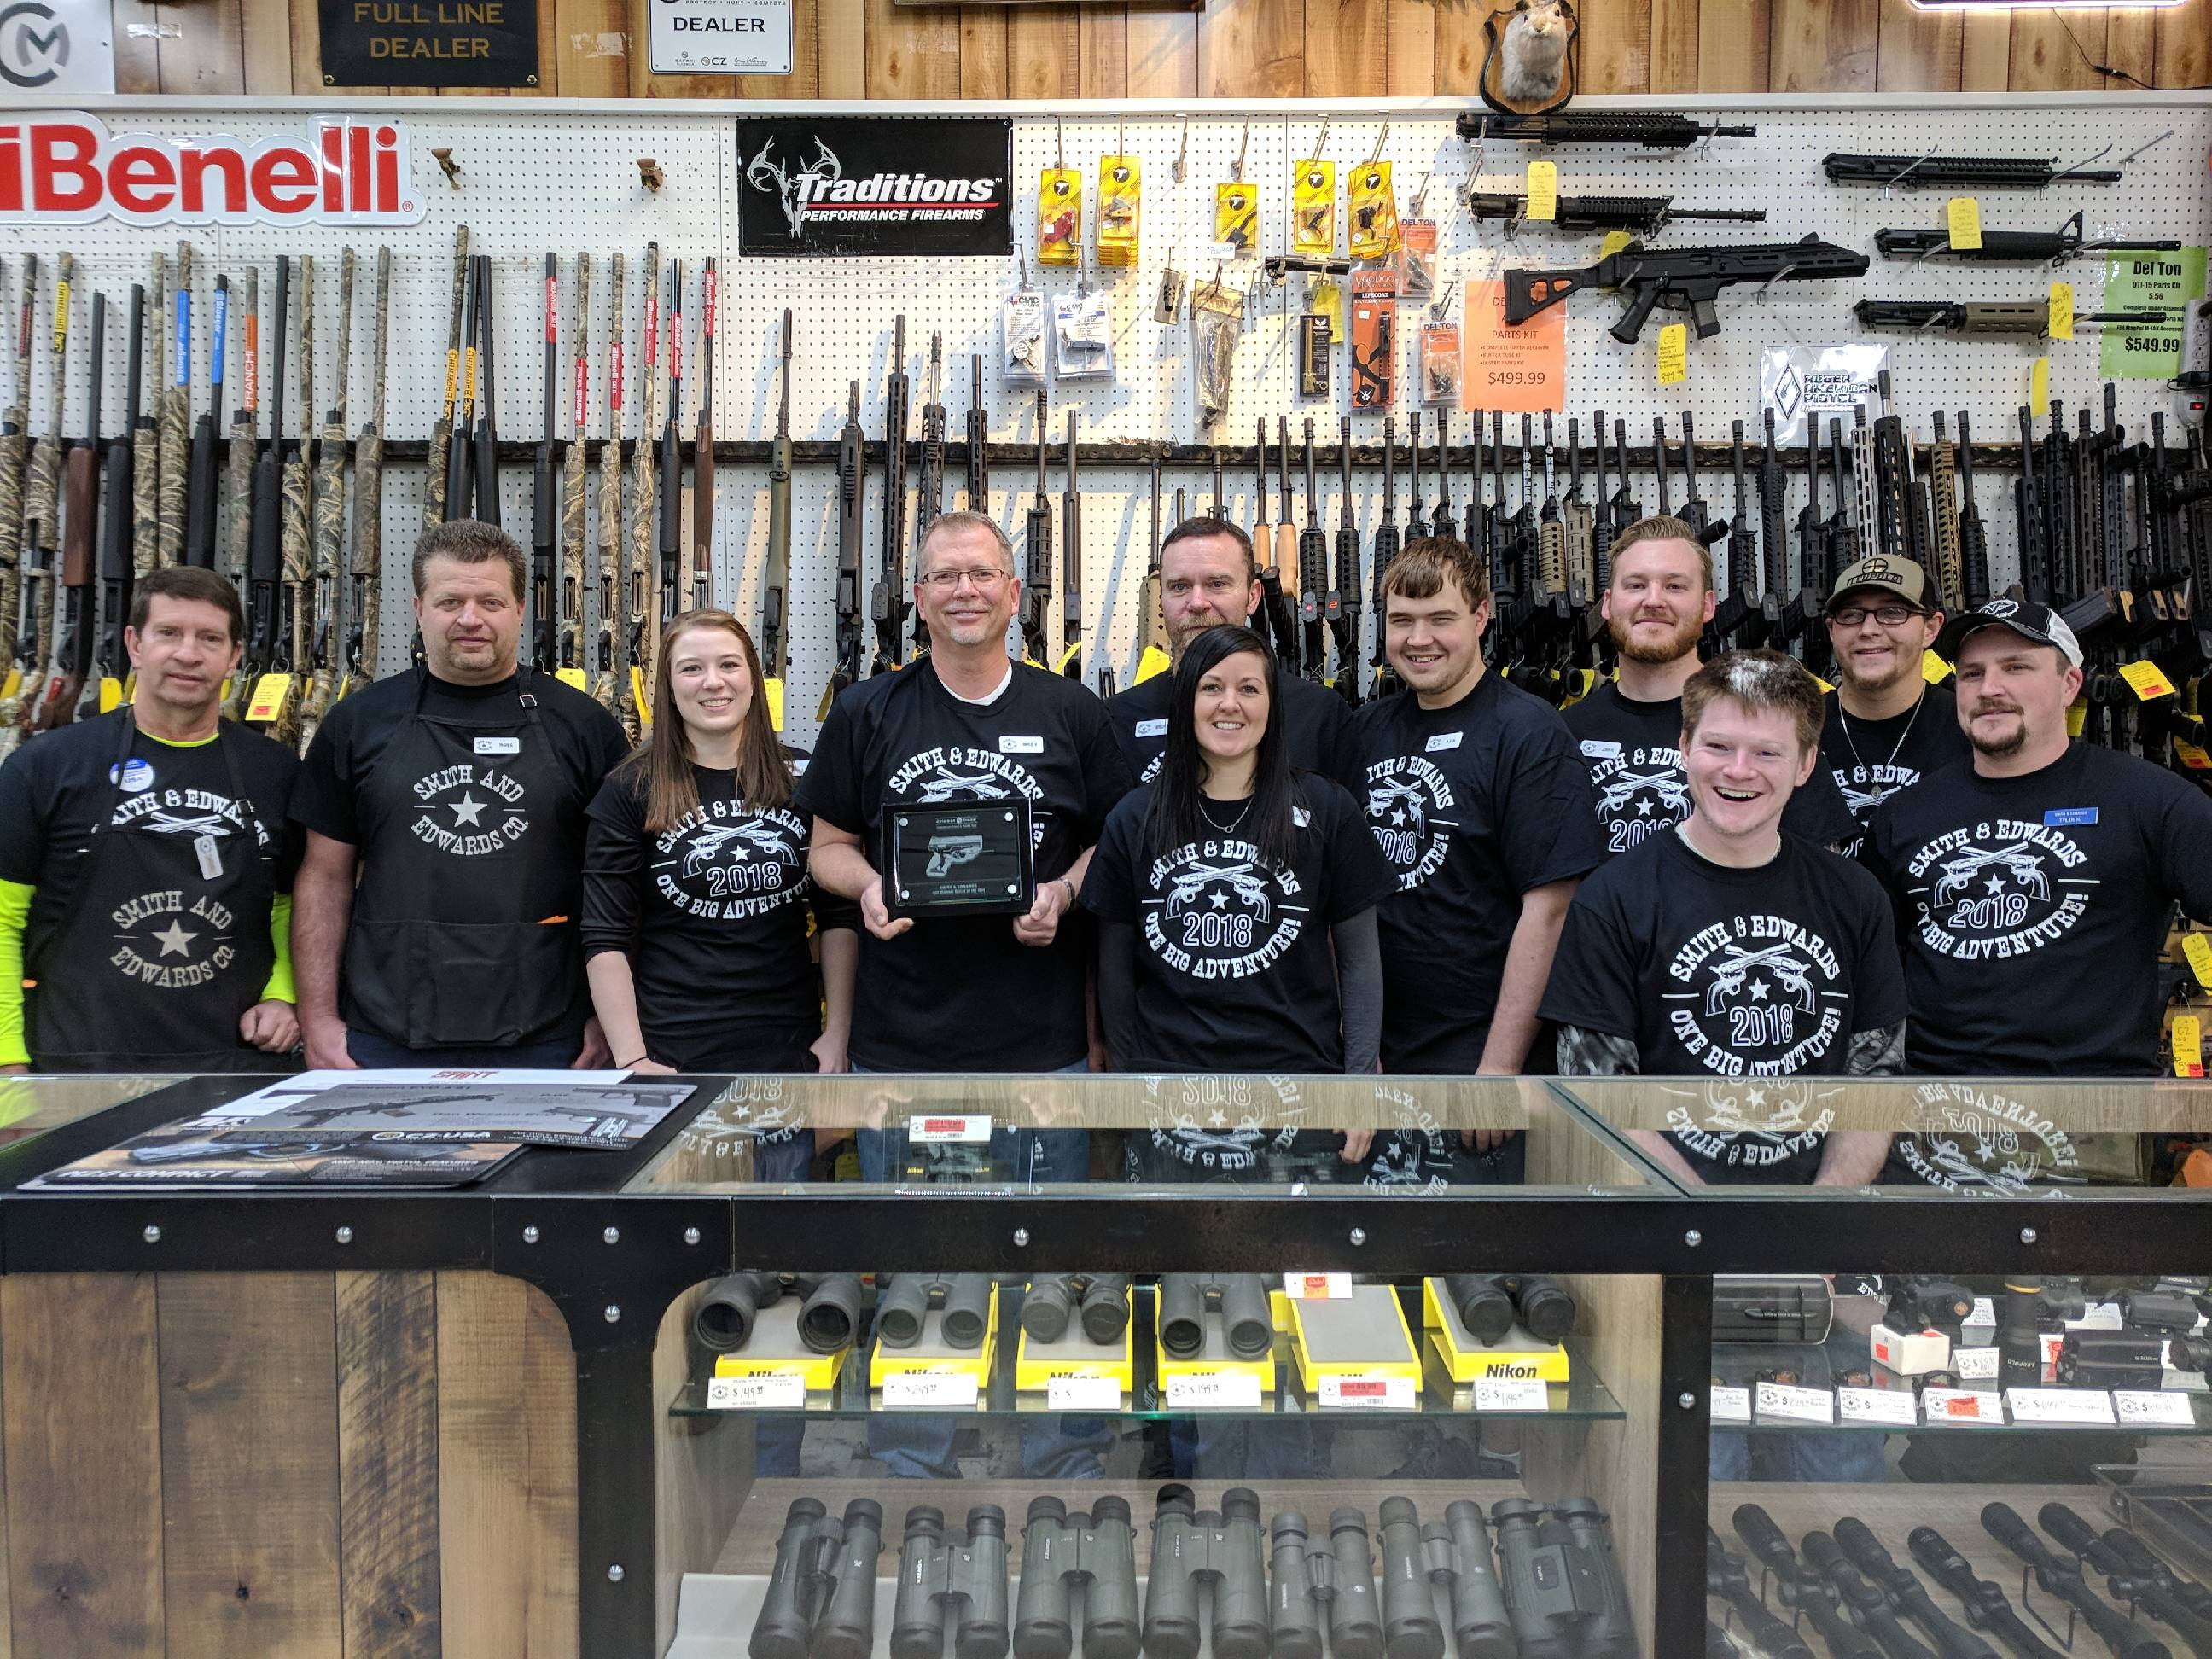 The guys and gals at our gun counter helped all our winners walk out the door happy.